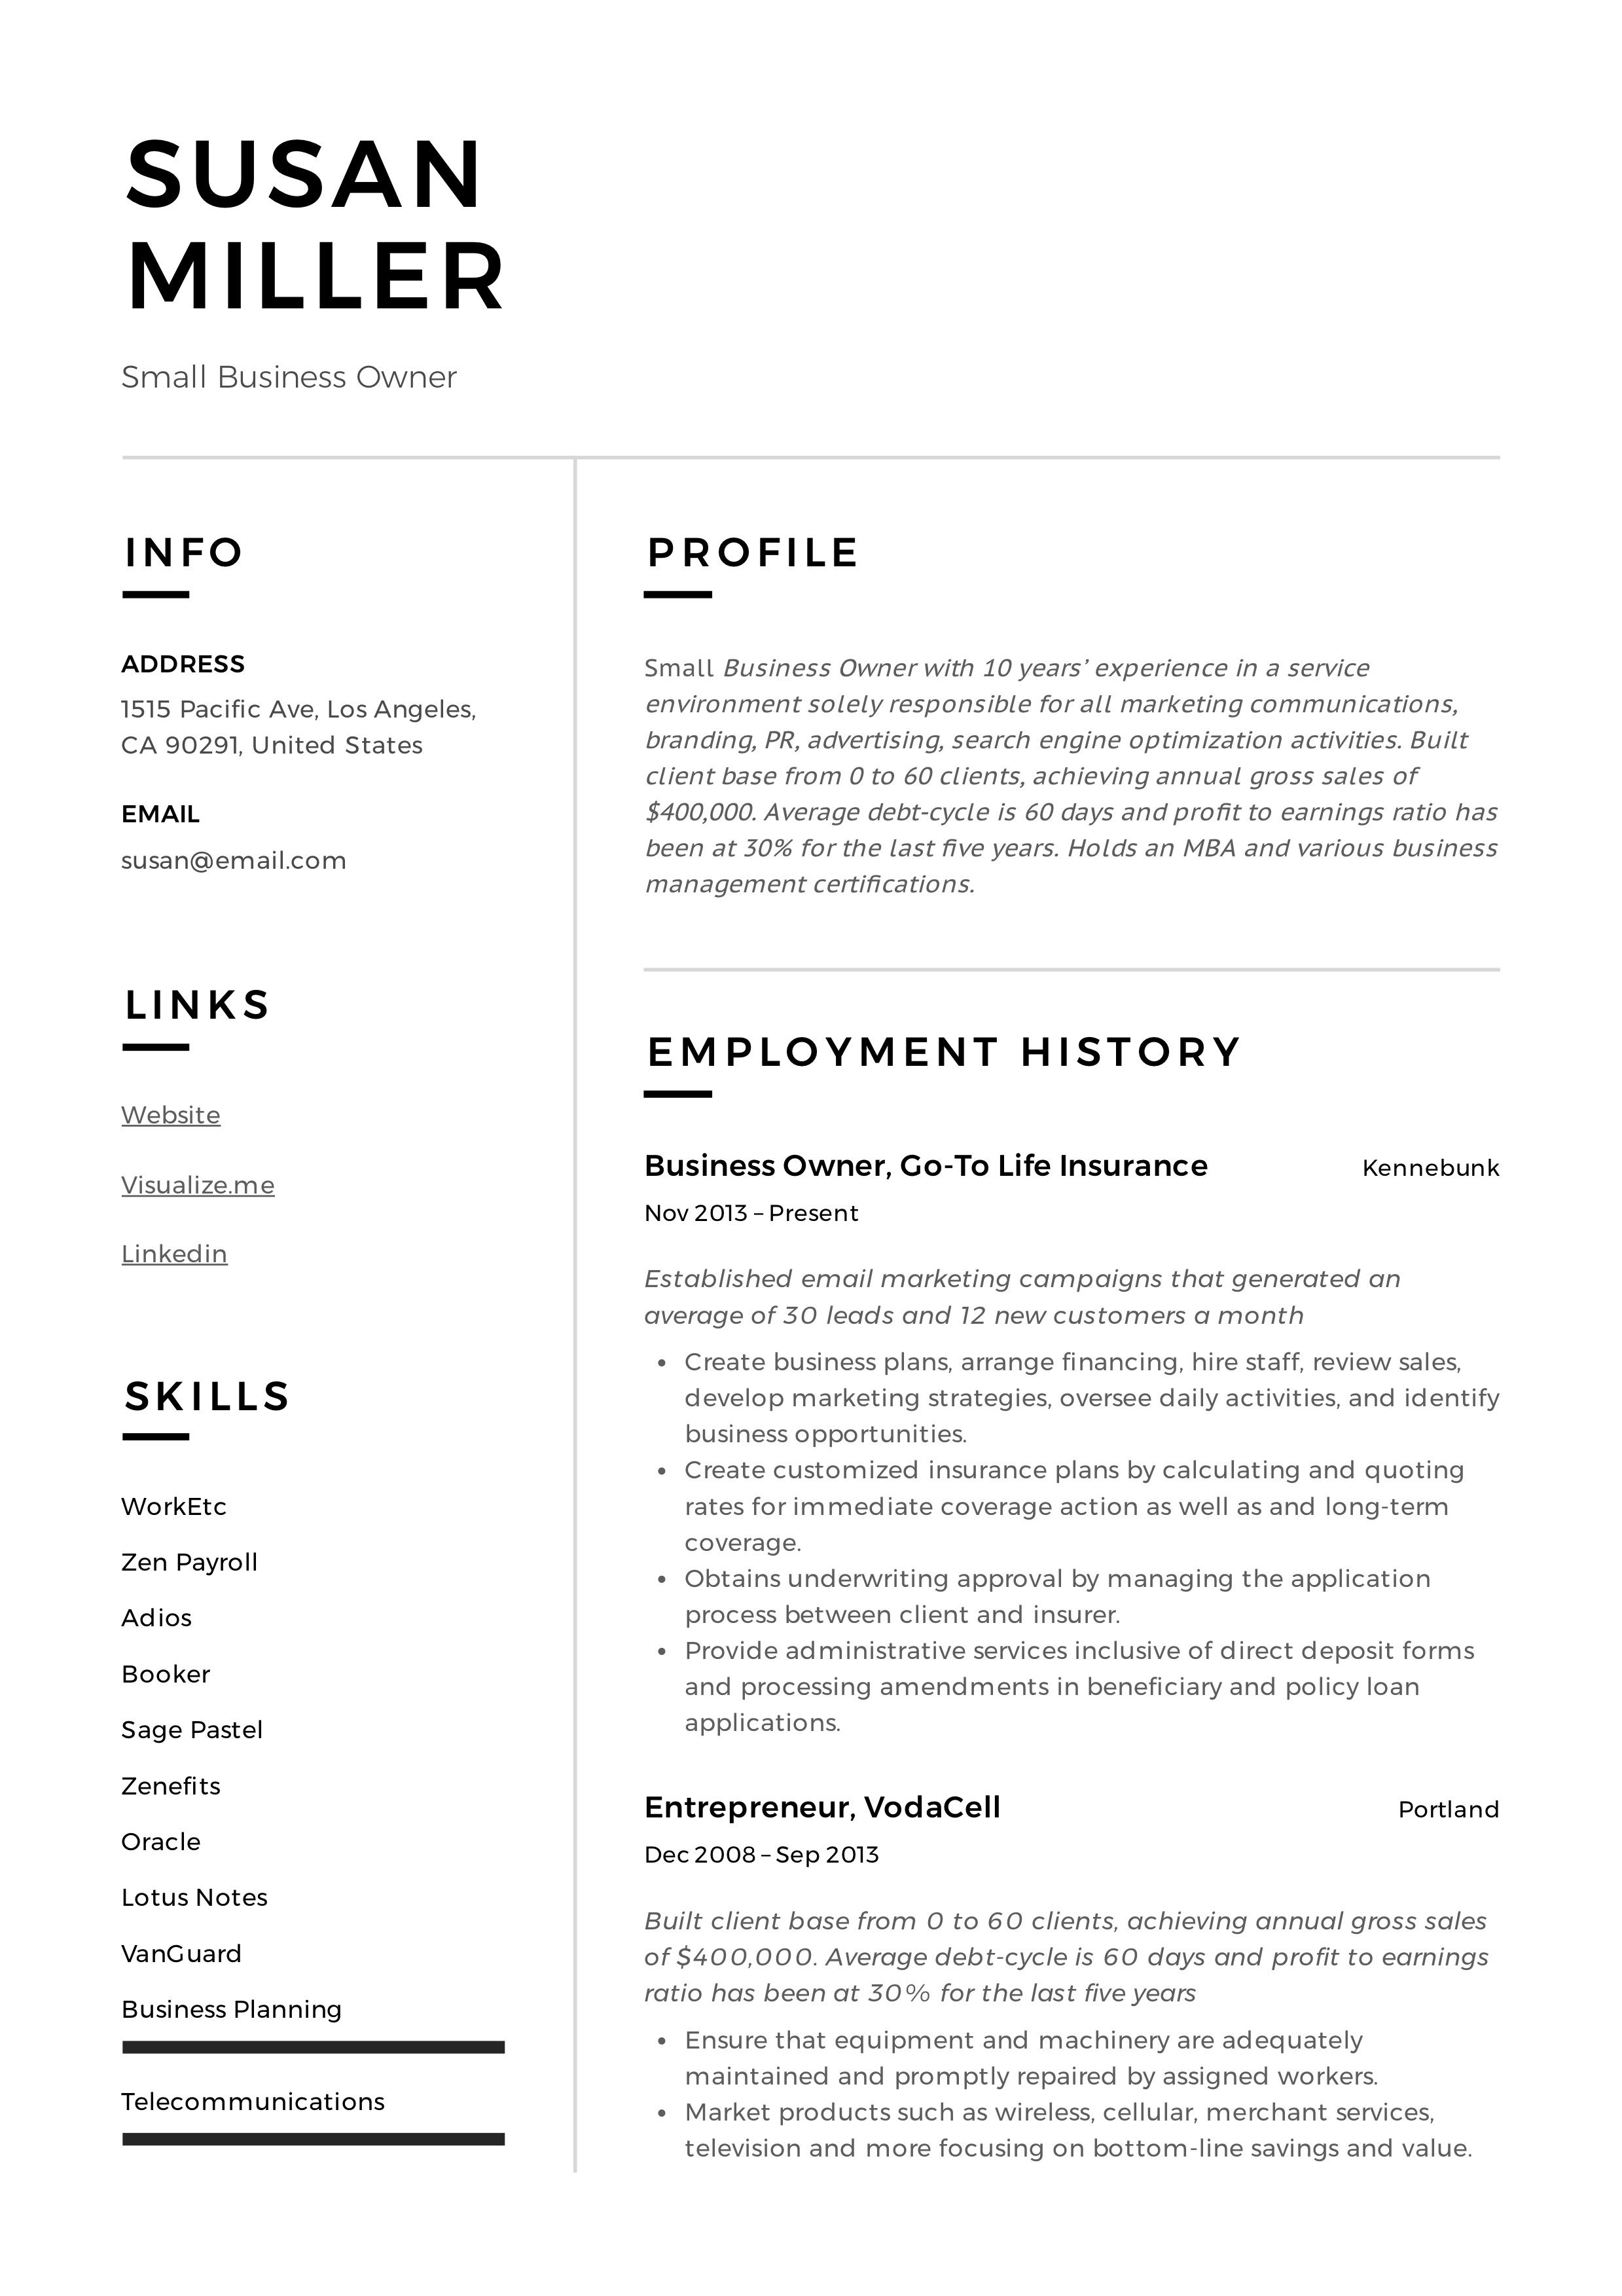 Small Business Owner Resume Sample Resume Examples Chef Resume Resume Guide